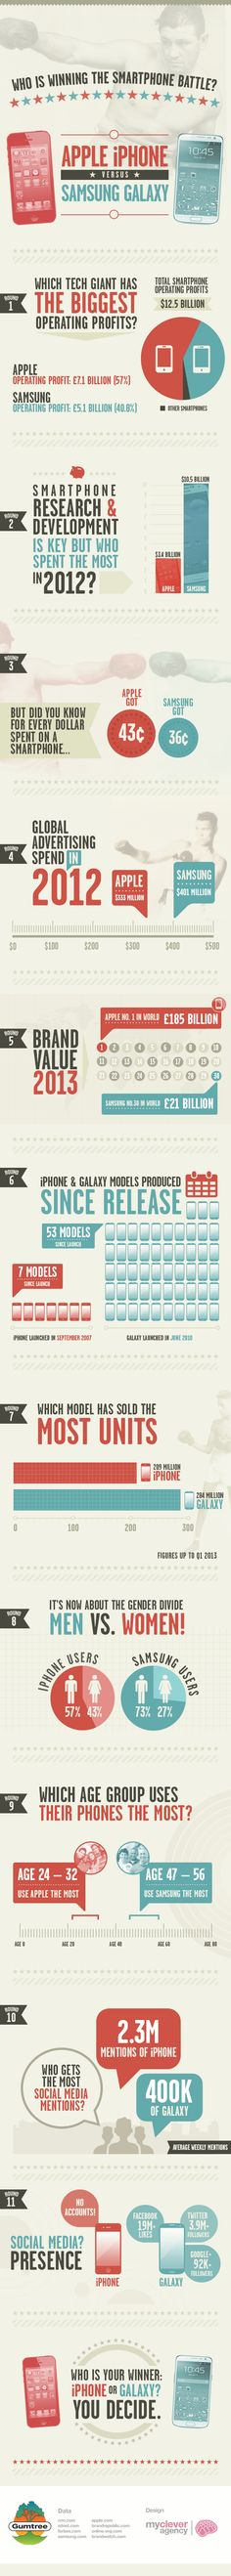 Gumtree Infographic iPhone vs Galaxy #Infogrpahic